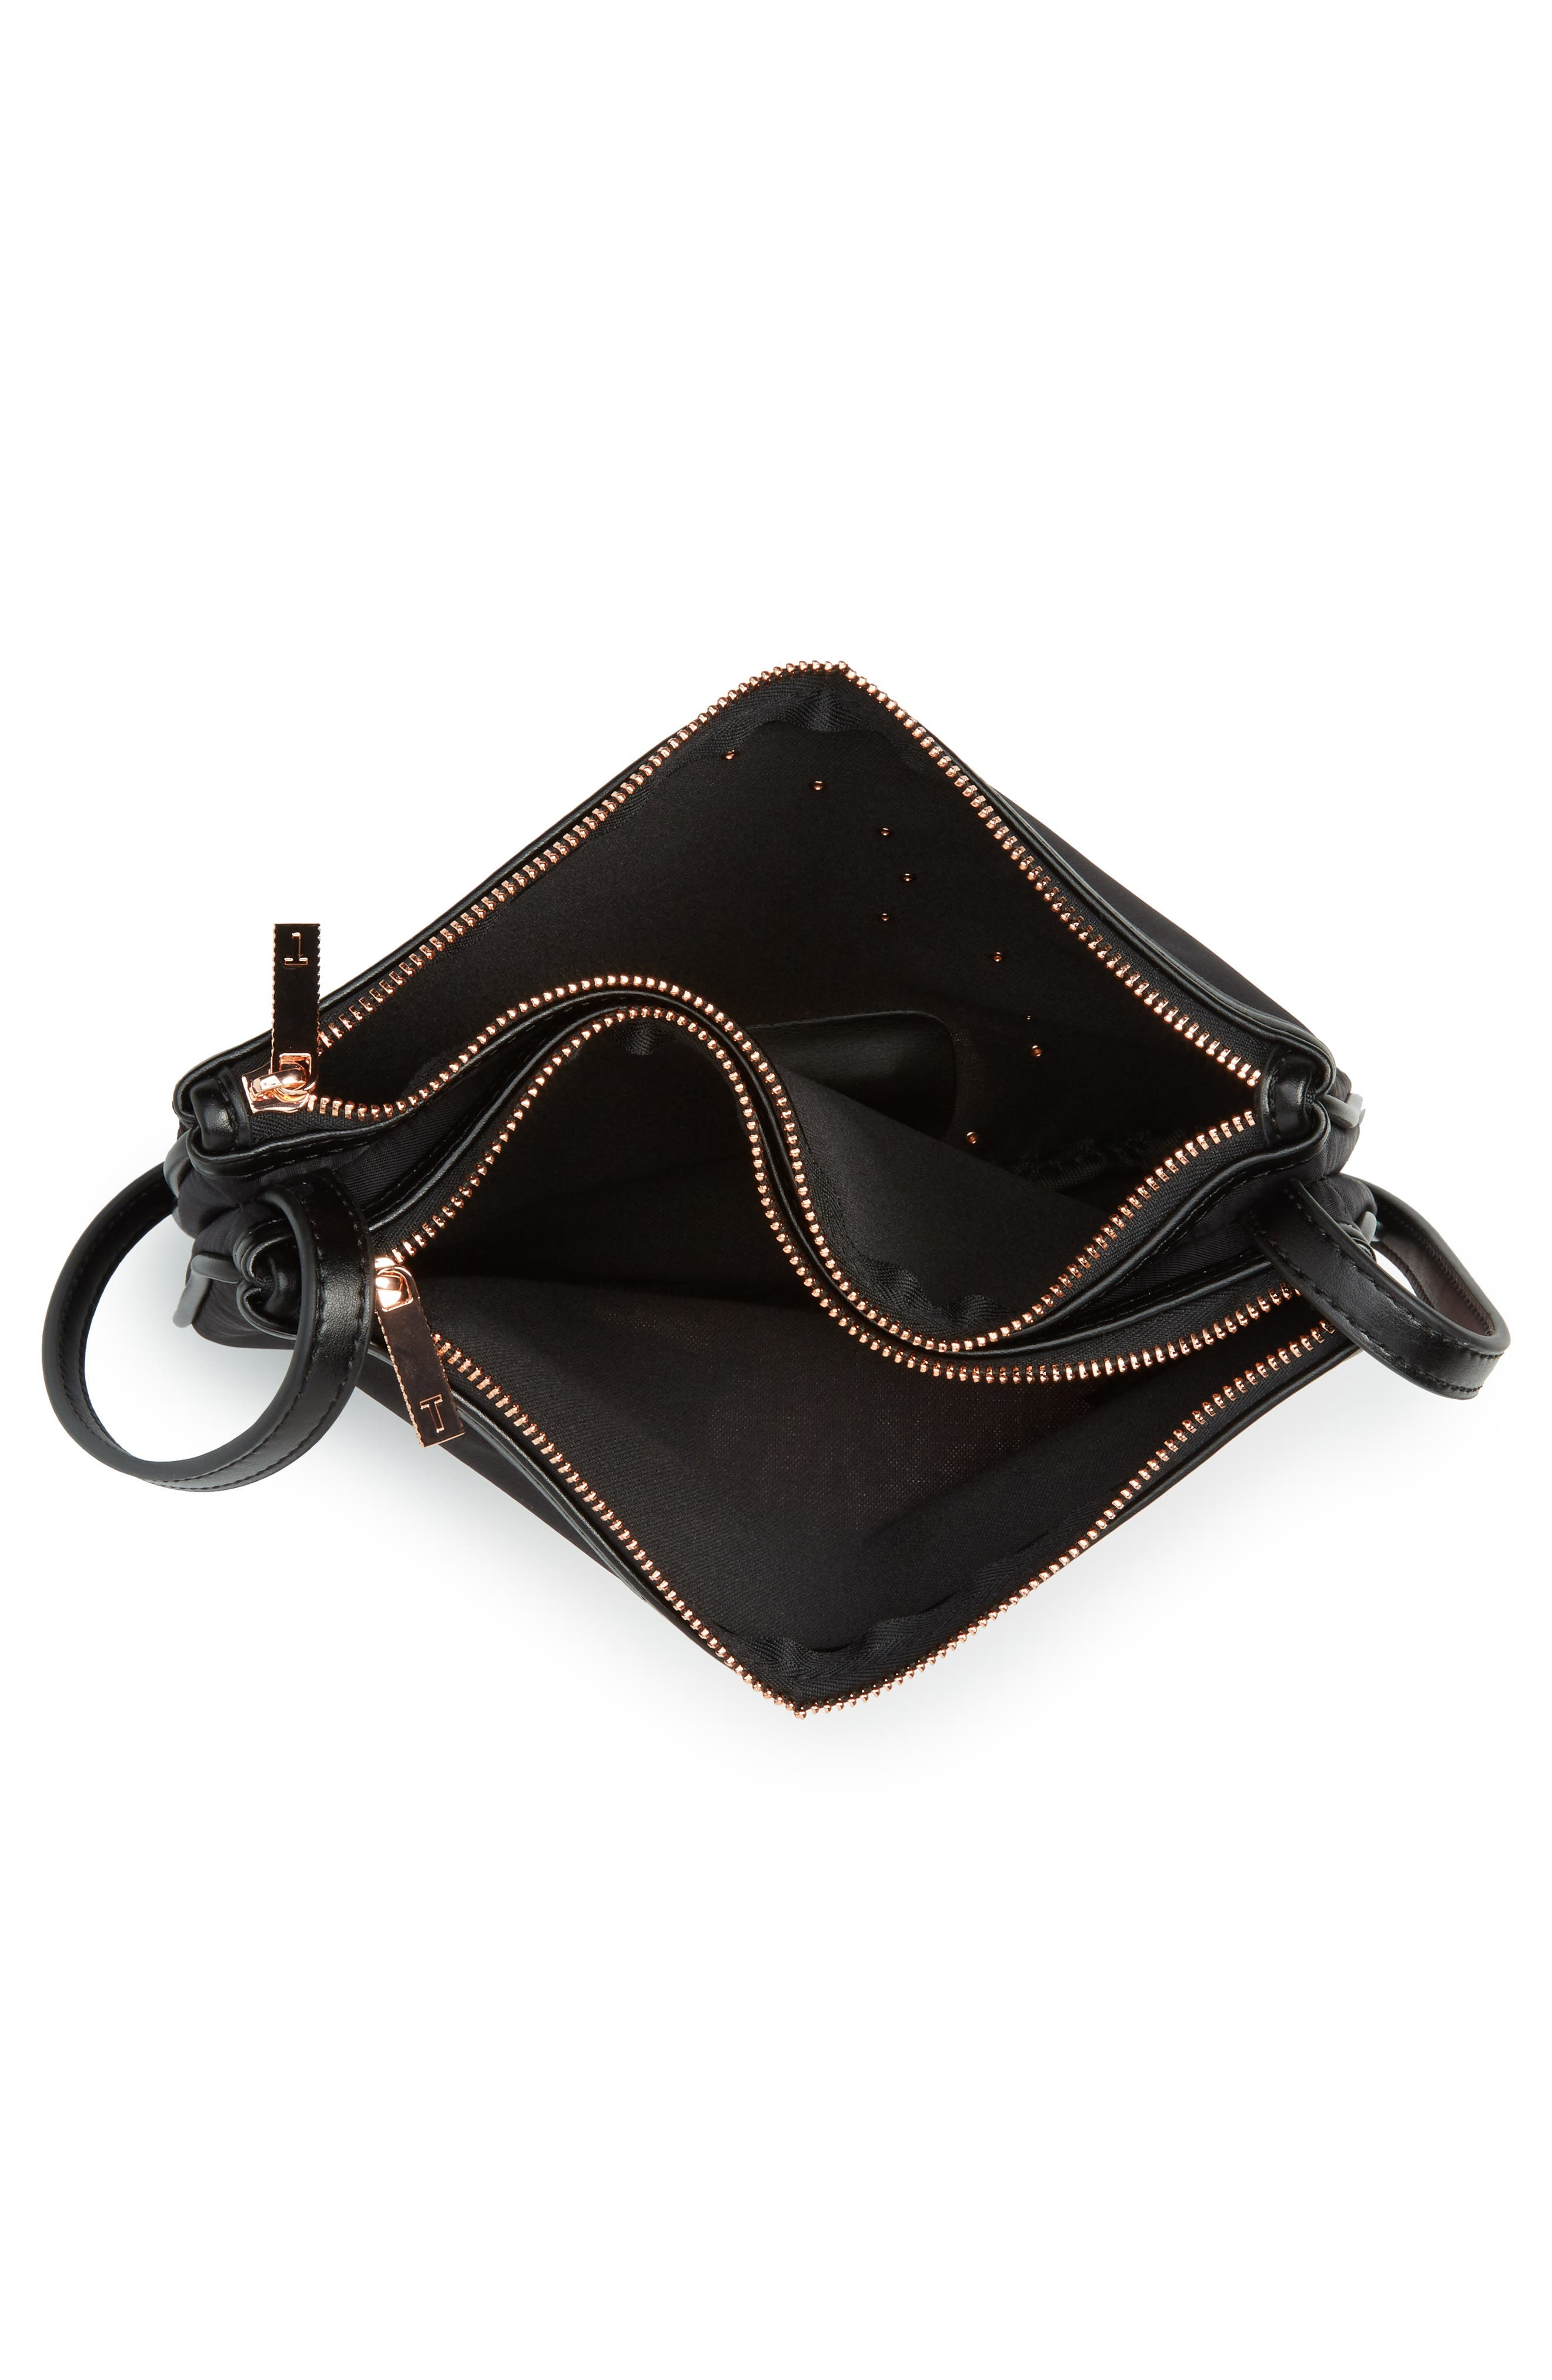 Tranquility Crossbody Bag,                             Alternate thumbnail 4, color,                             BLACK